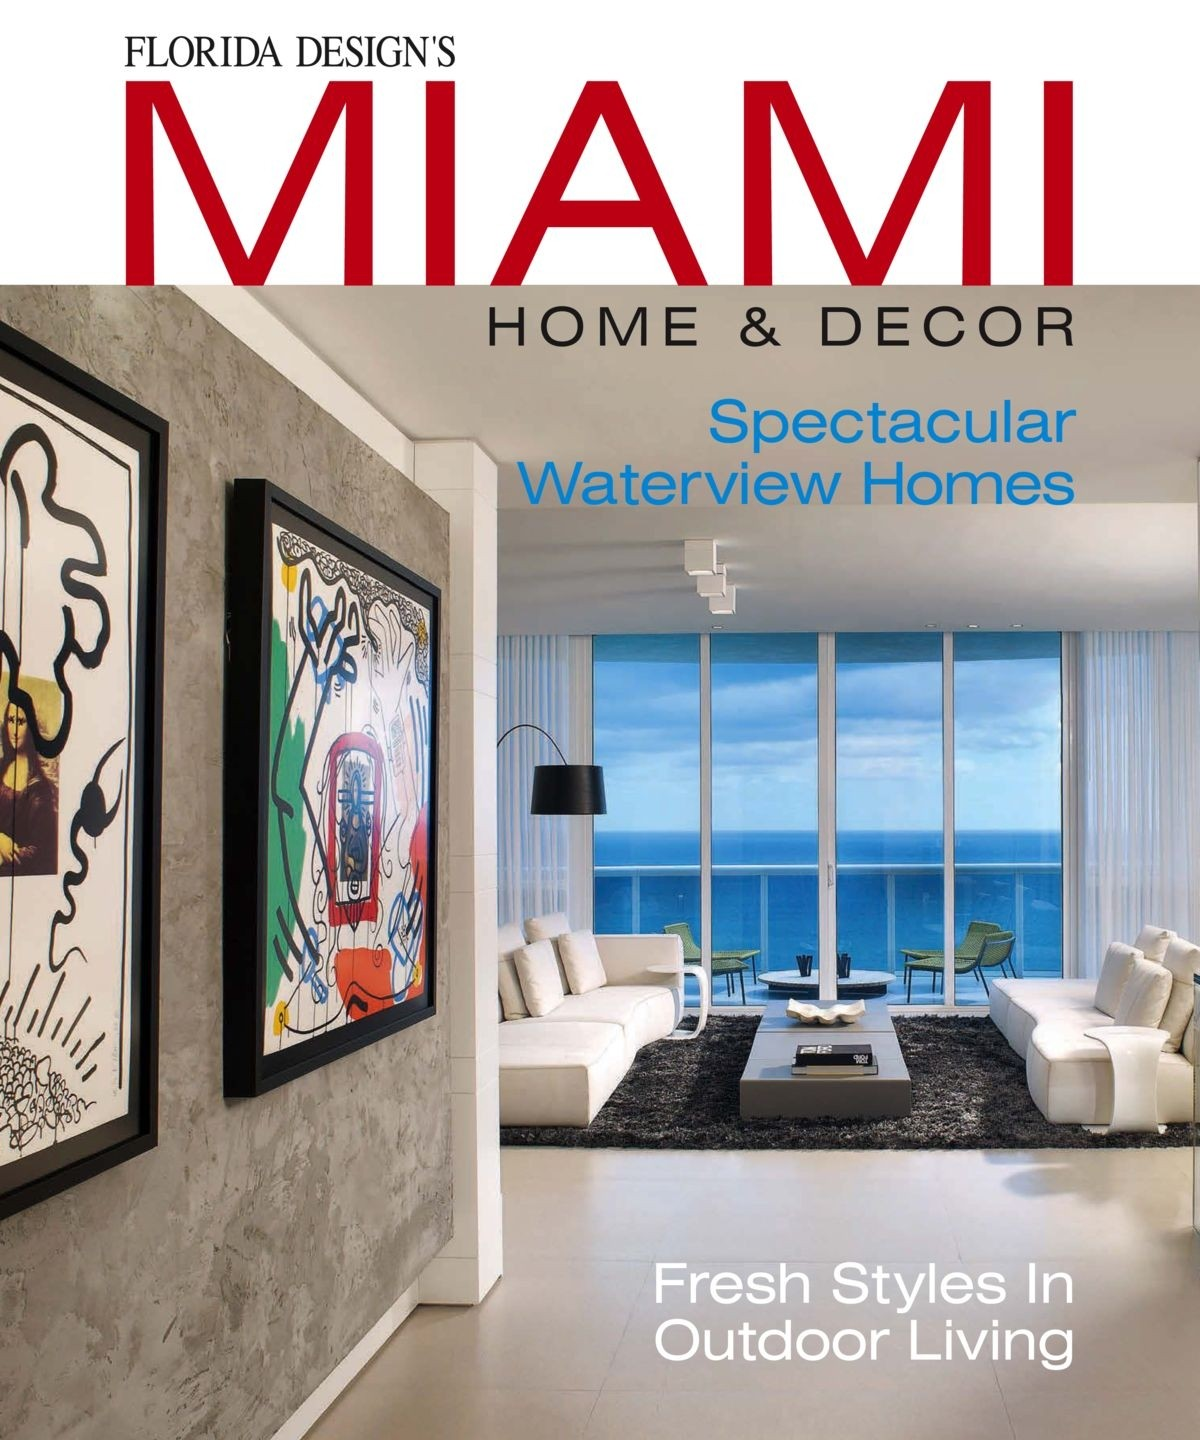 Miami home decor usa magazine subscription design info Home design magazine subscription